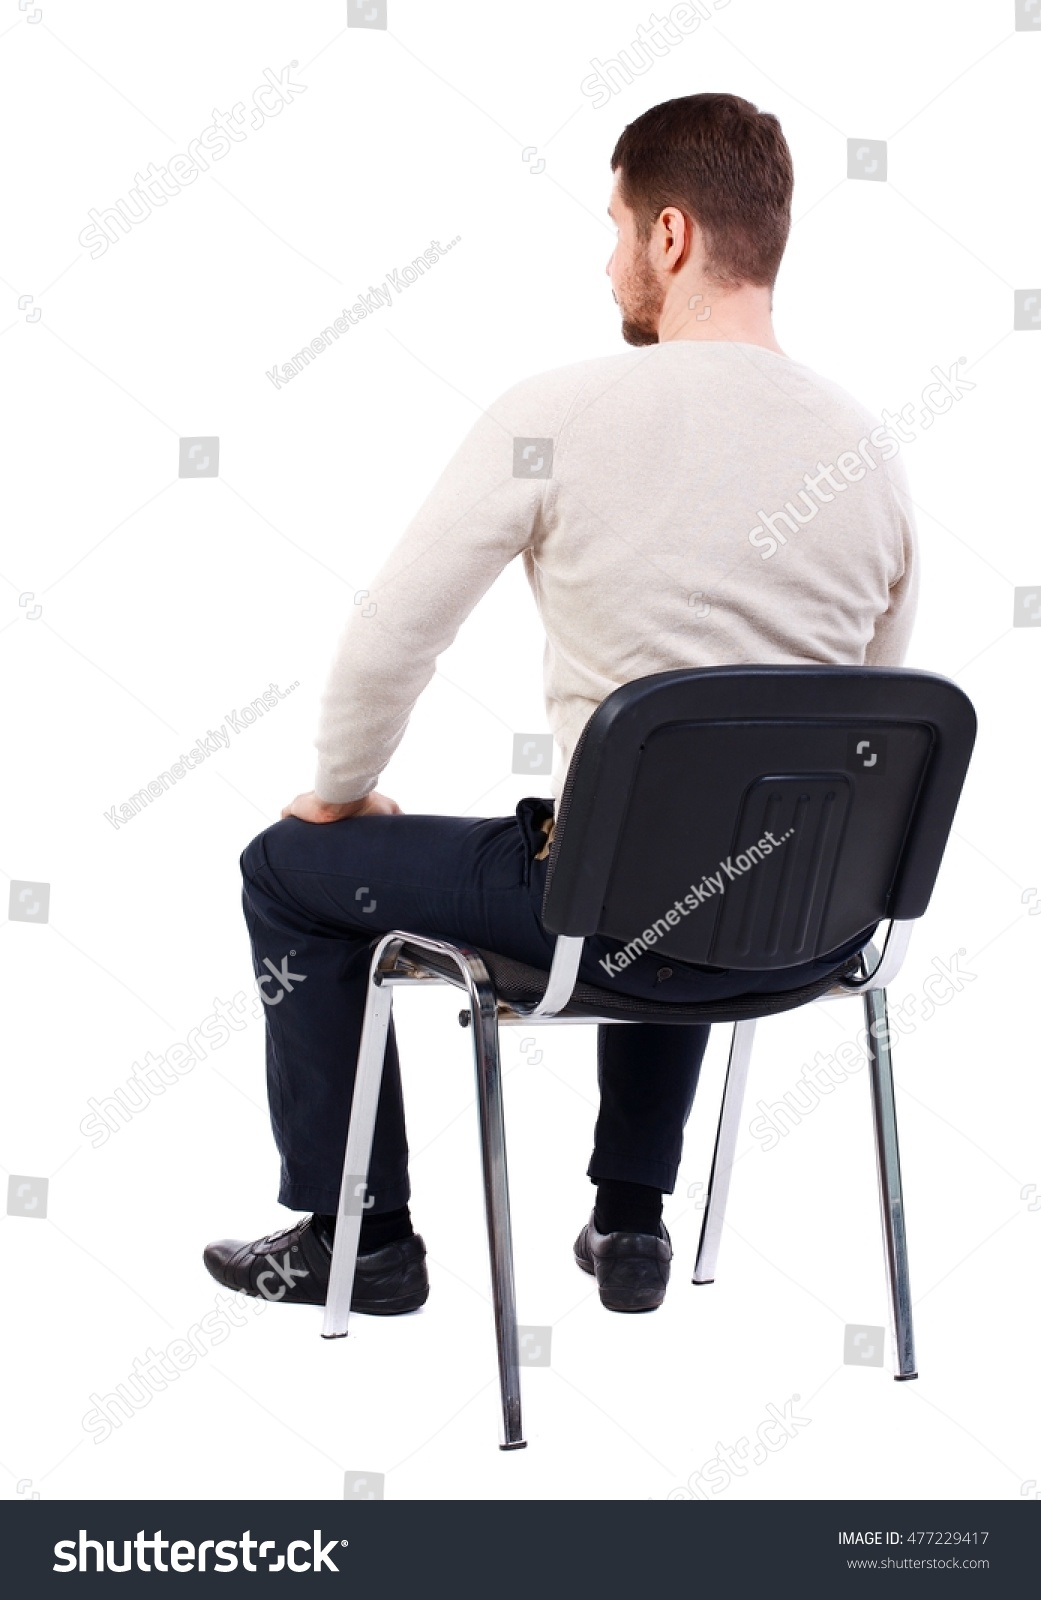 Man sitting in chair side - Back View Of Business Man Sitting On Chair Bearded Man In A White Warm Sweater